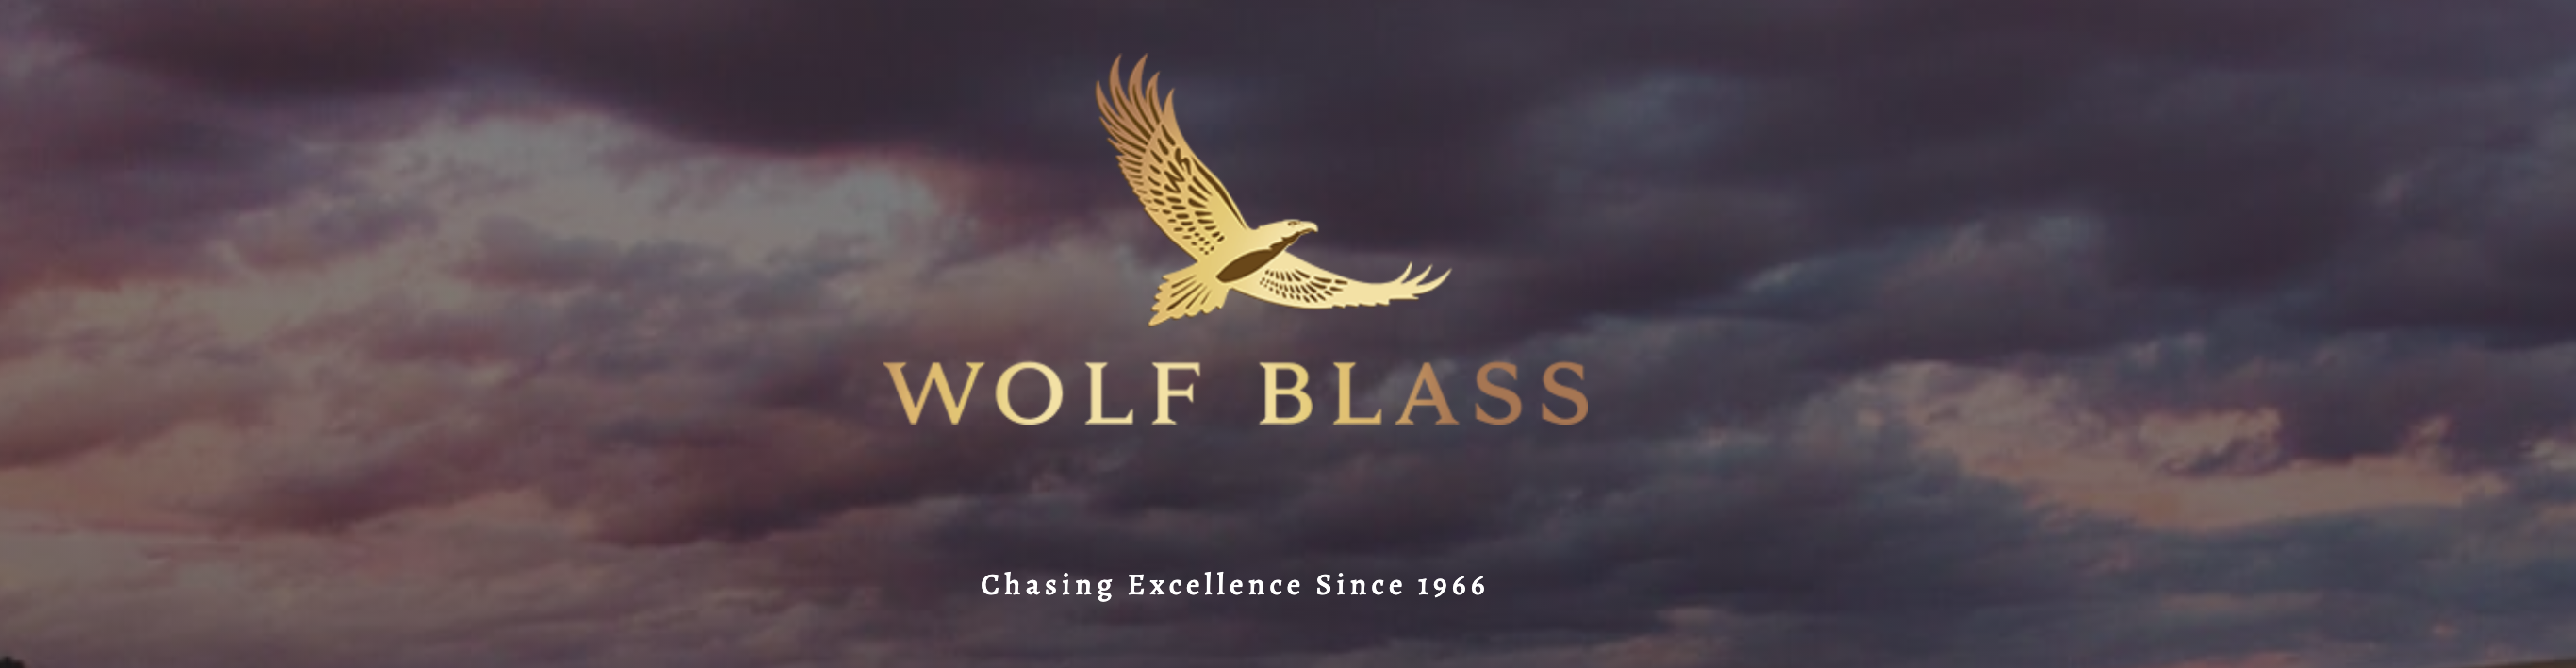 Wolf Blass crowned 2021 'Red Winemaker of the Year' for the 4th time at prestigious global wine competition